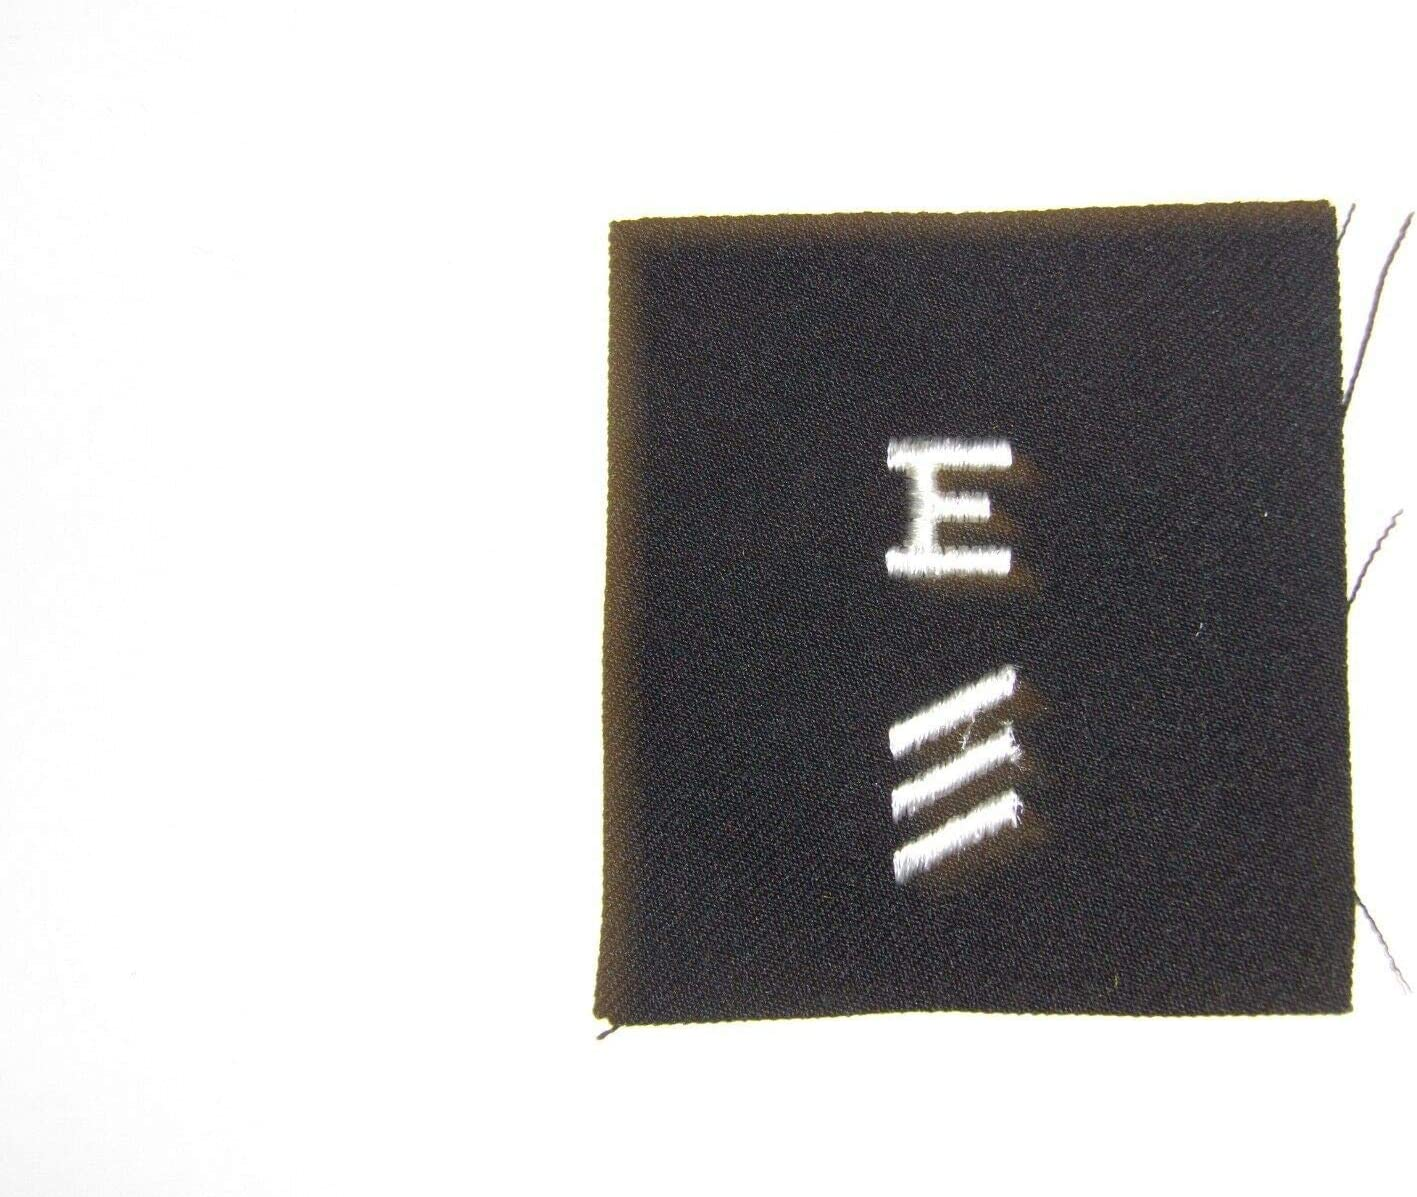 Vintage Reproduction Special price for a limited time b3705 Vietnam US Online limited product Distinguishing Navy E Mark